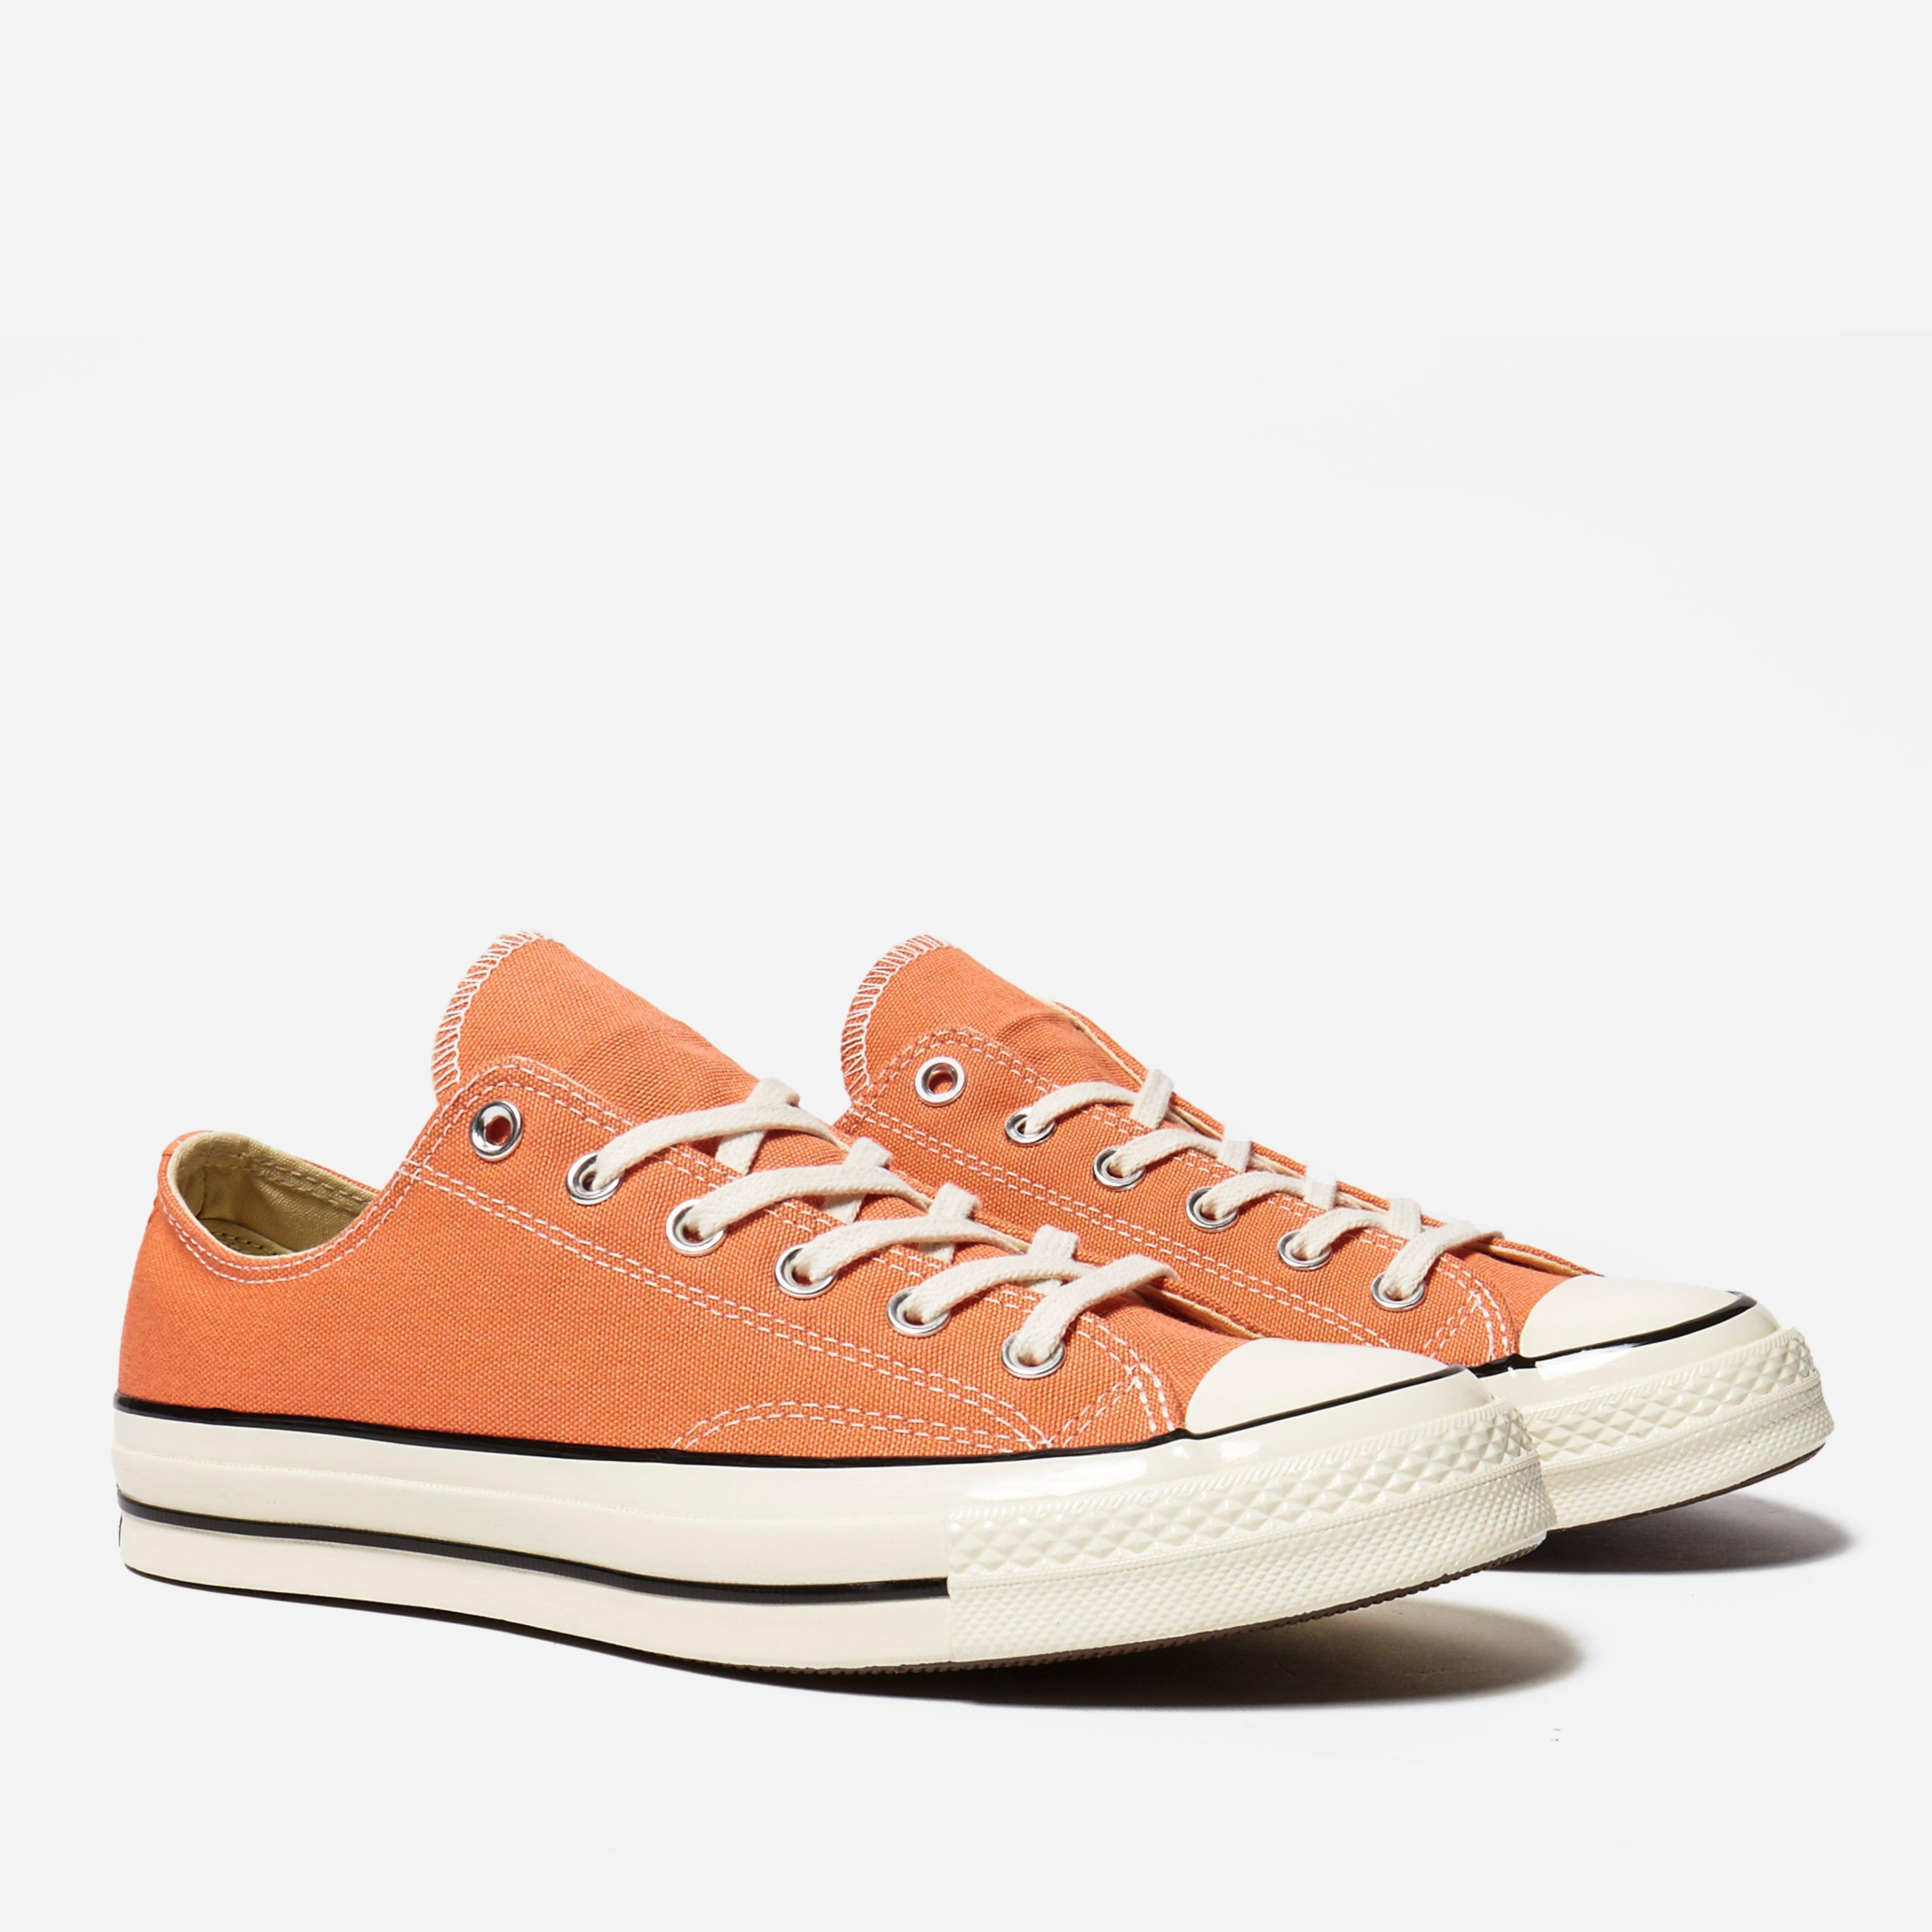 Coverse Chuck Taylor 1970 Ox